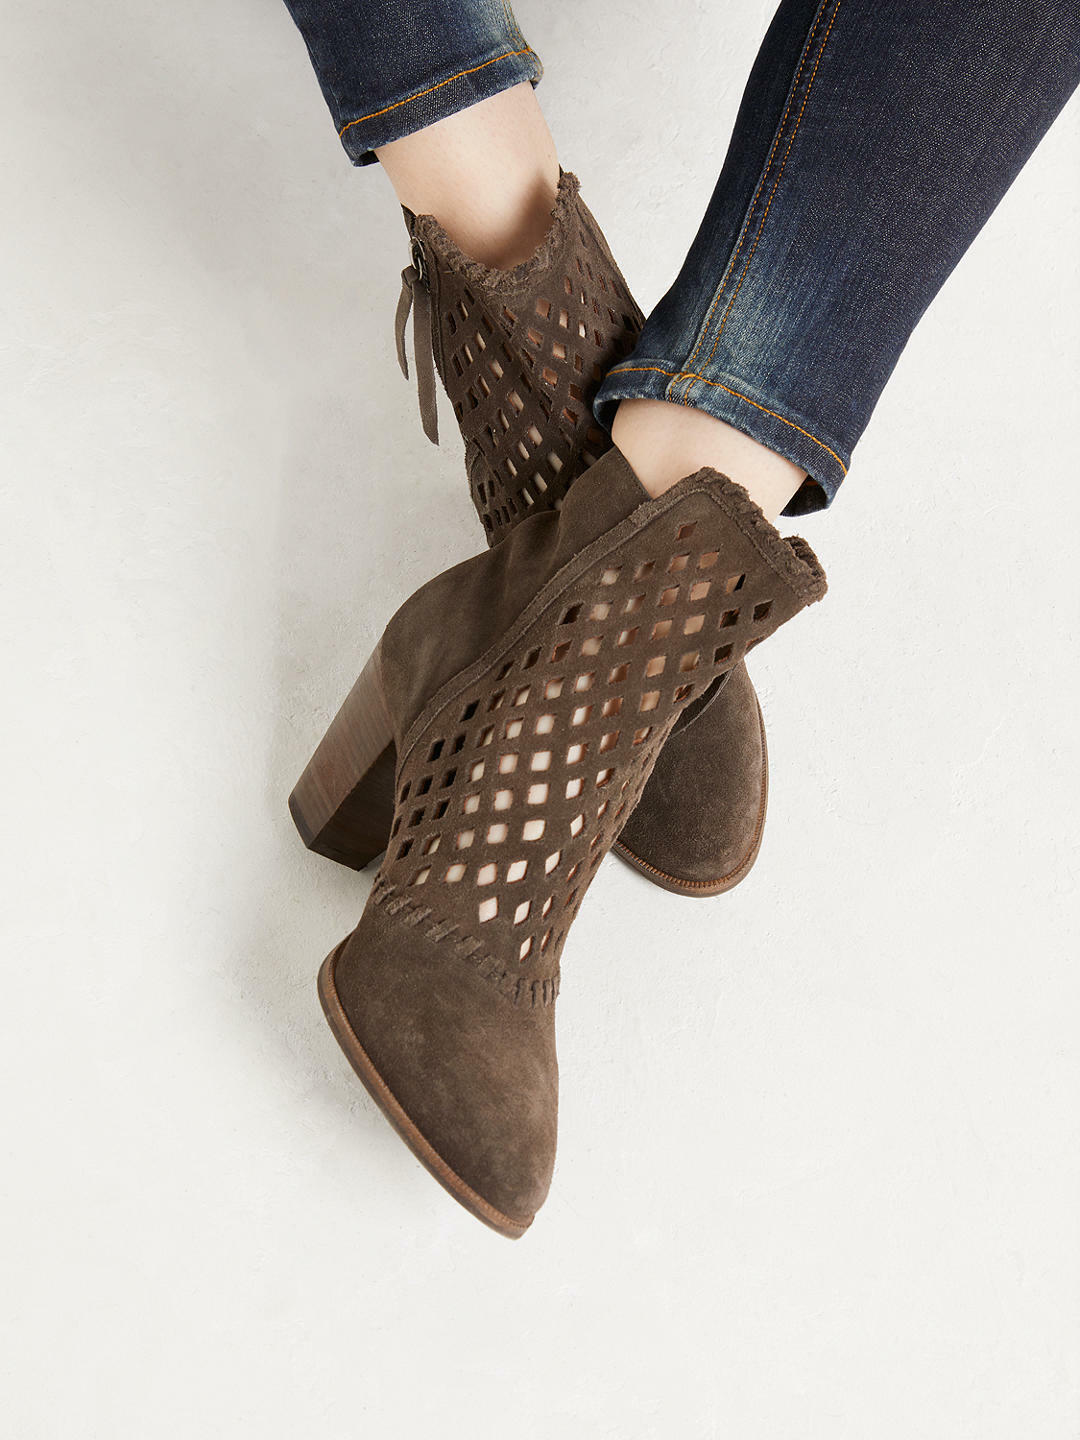 And   OR by John Lewis Grey Tros Slouchy Ankle Boots   38 BNIB